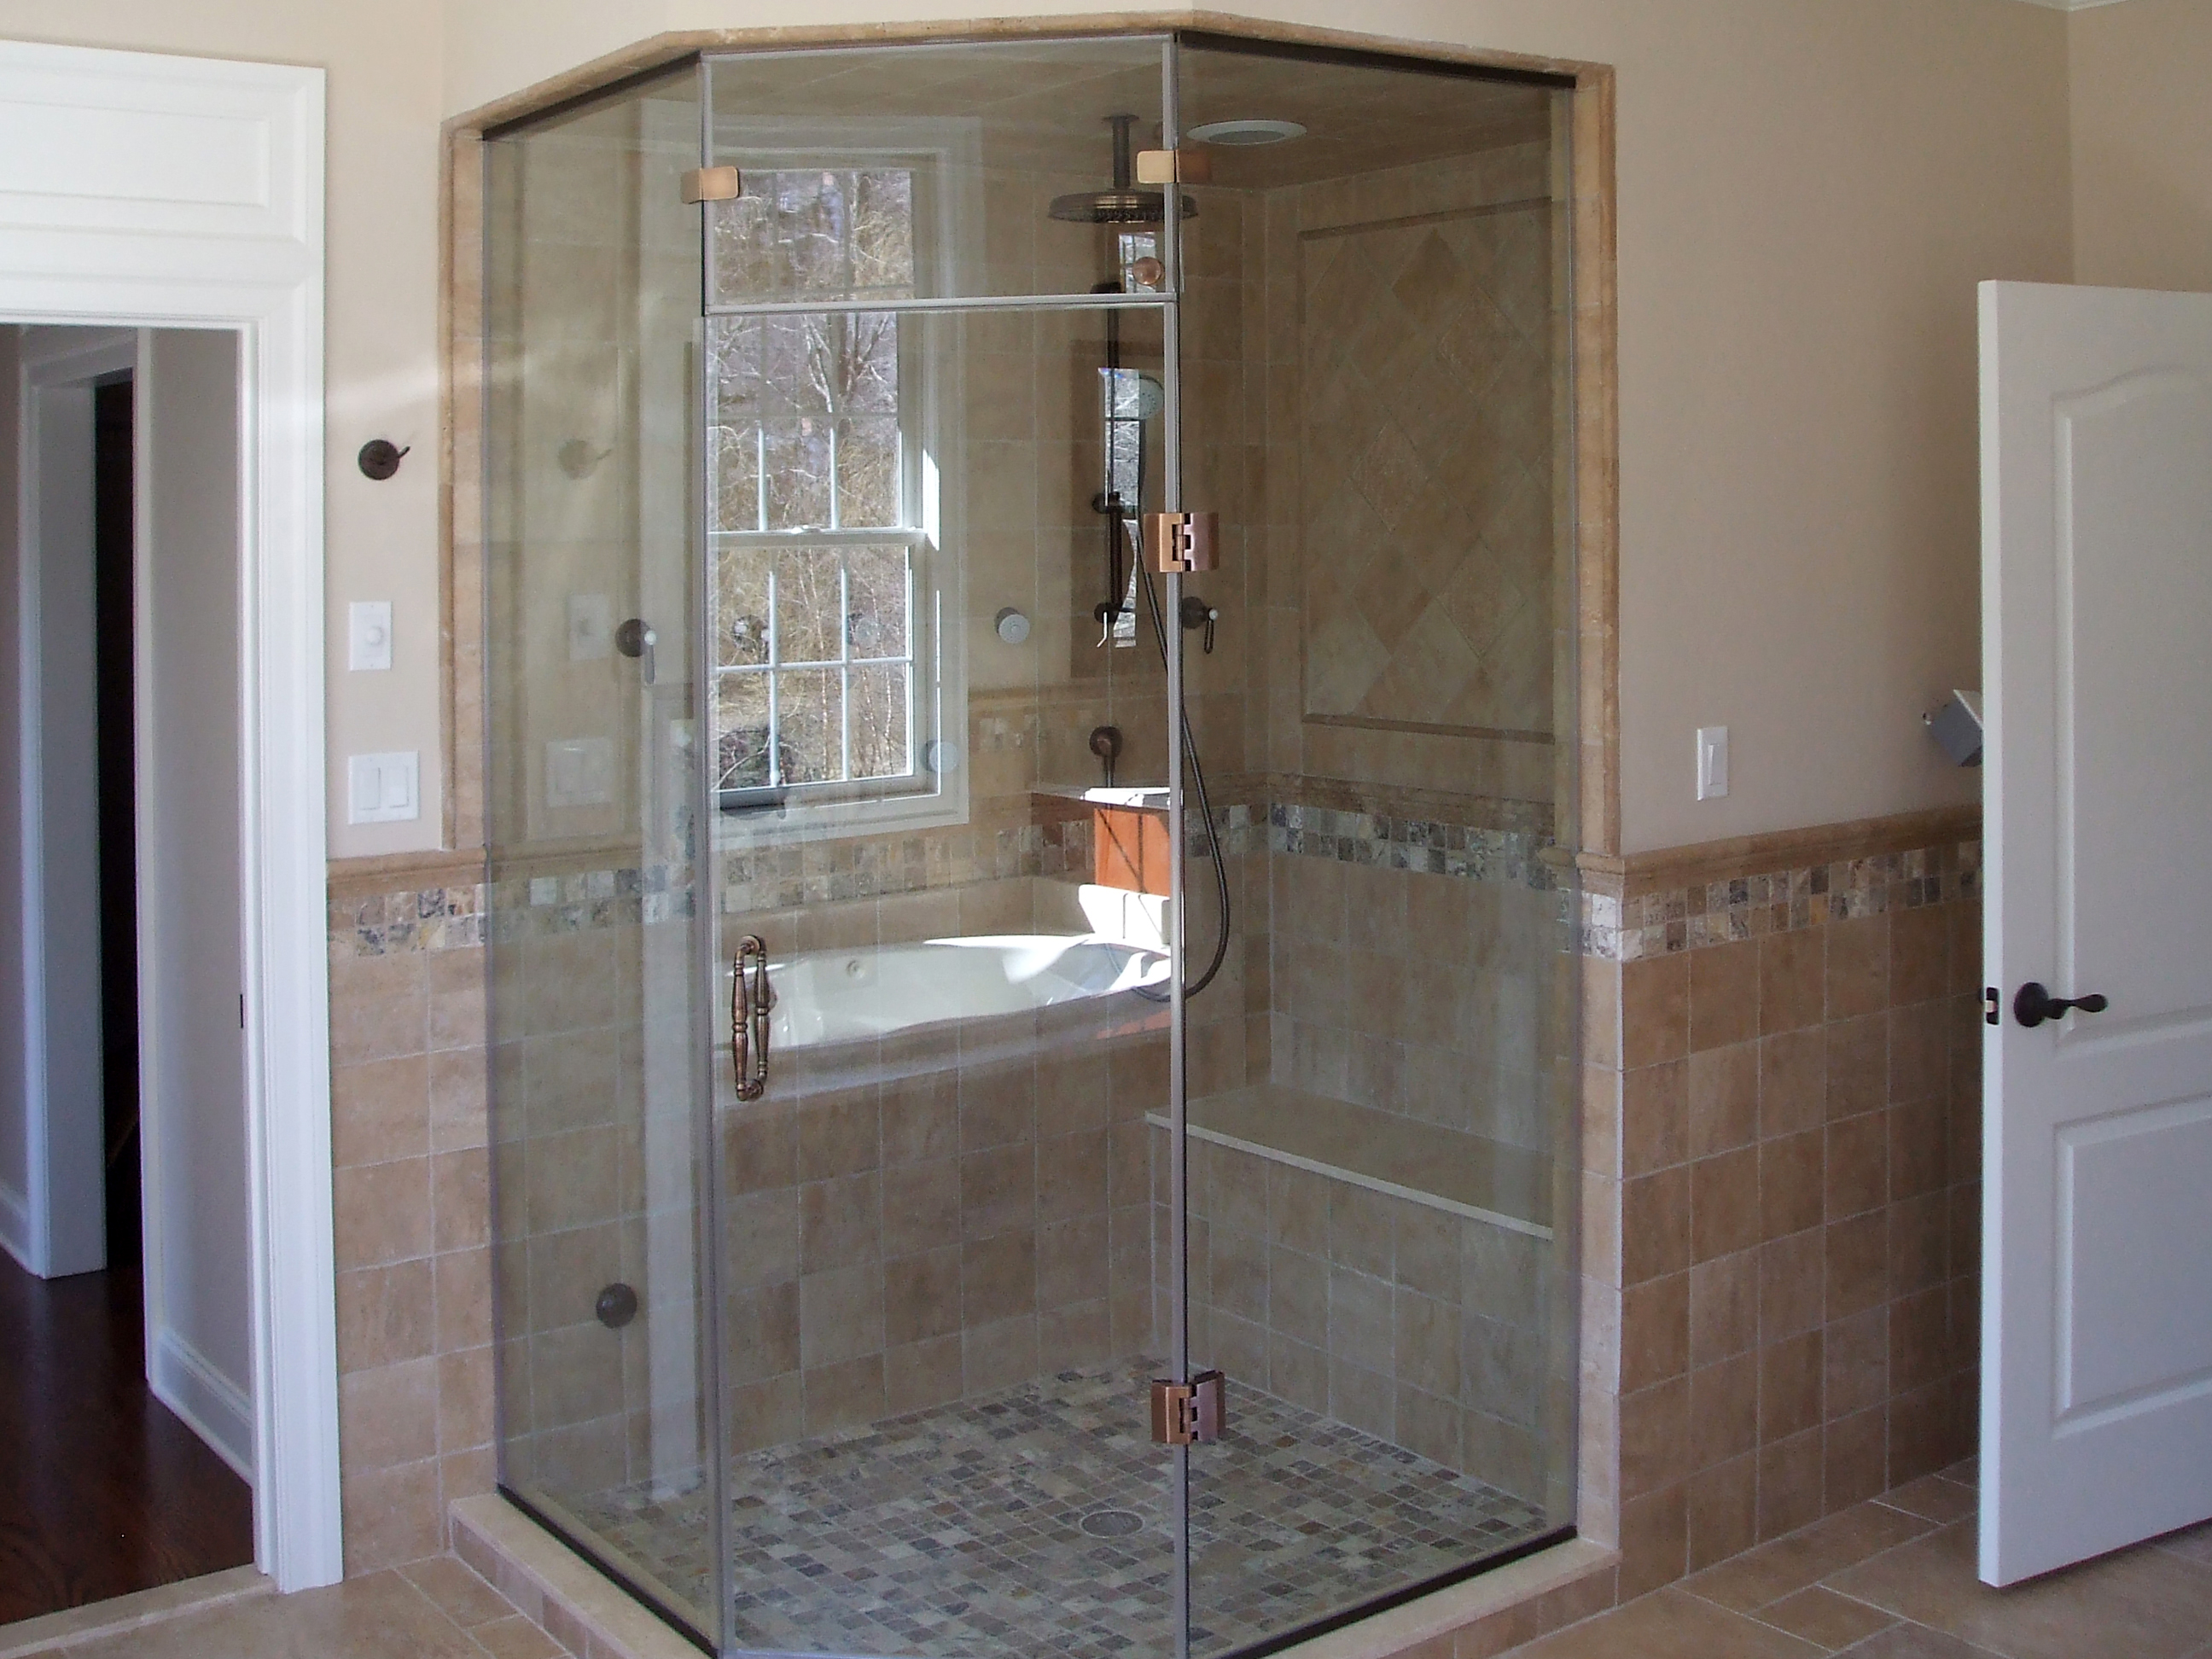 4 - Frameless steam door